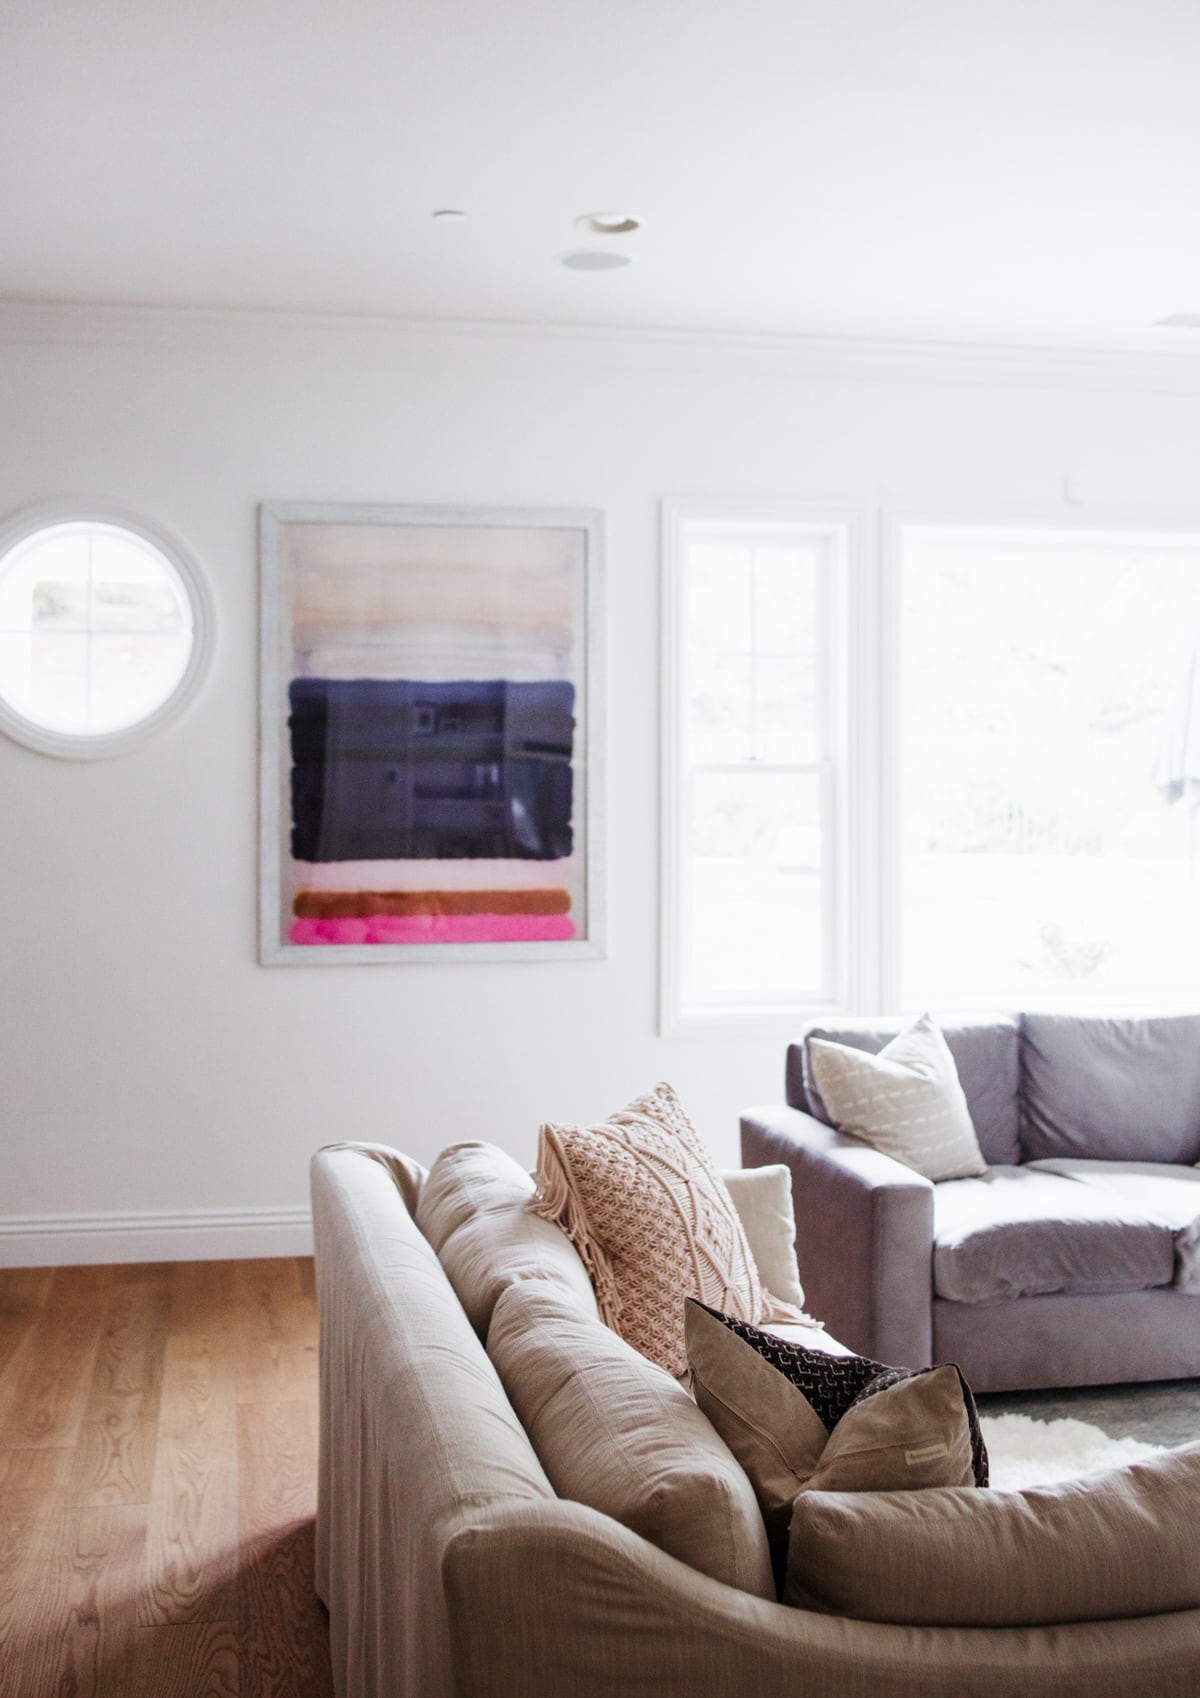 Home tour: small family room updates Art Print